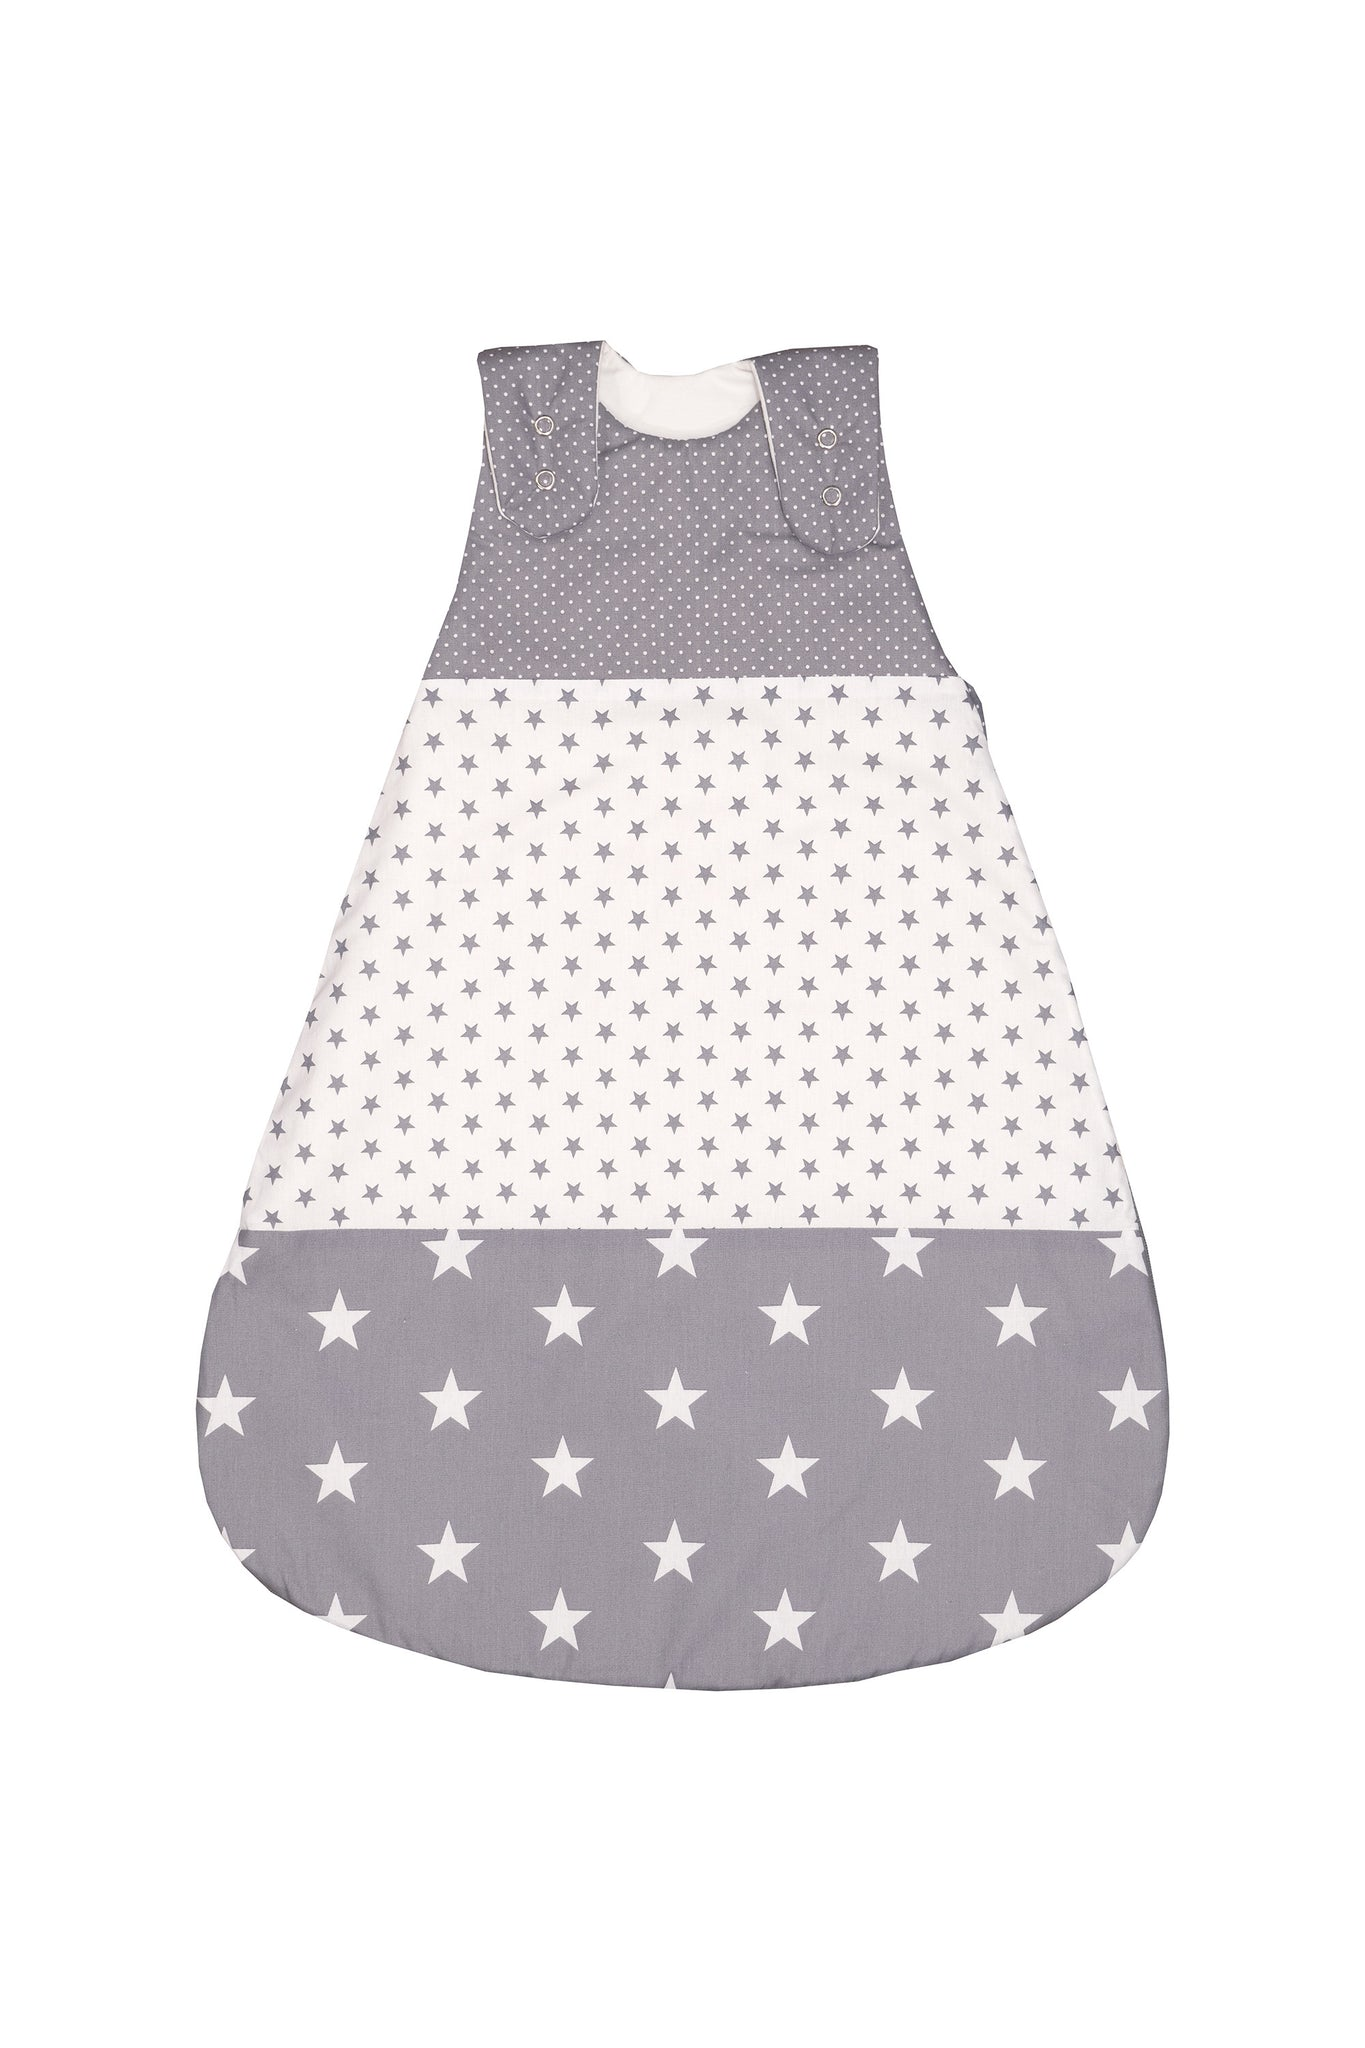 Sleep Sack – Baby Sleeping Bag, Wearable Blanket, Grey with Stars, 0-6 Months